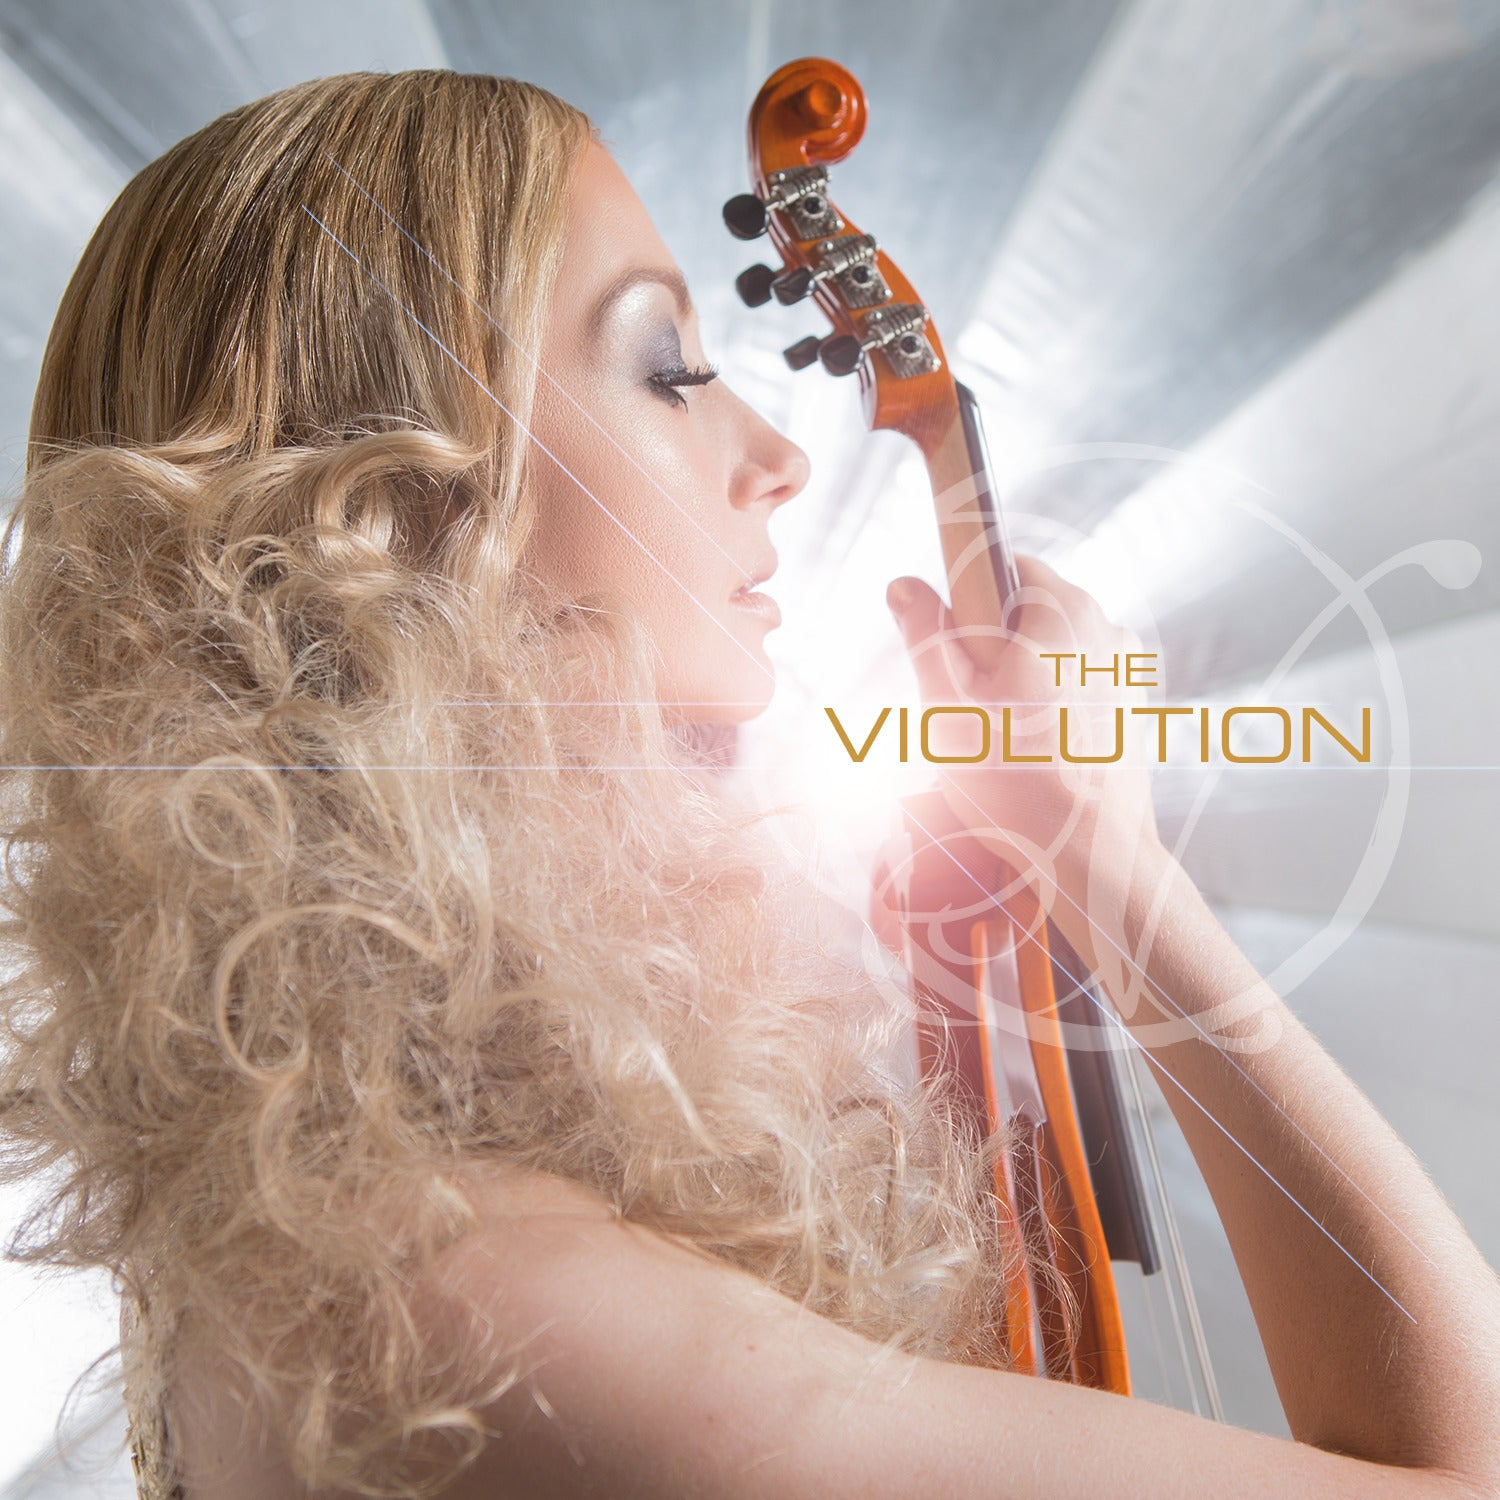 the violution EP/DVD debut